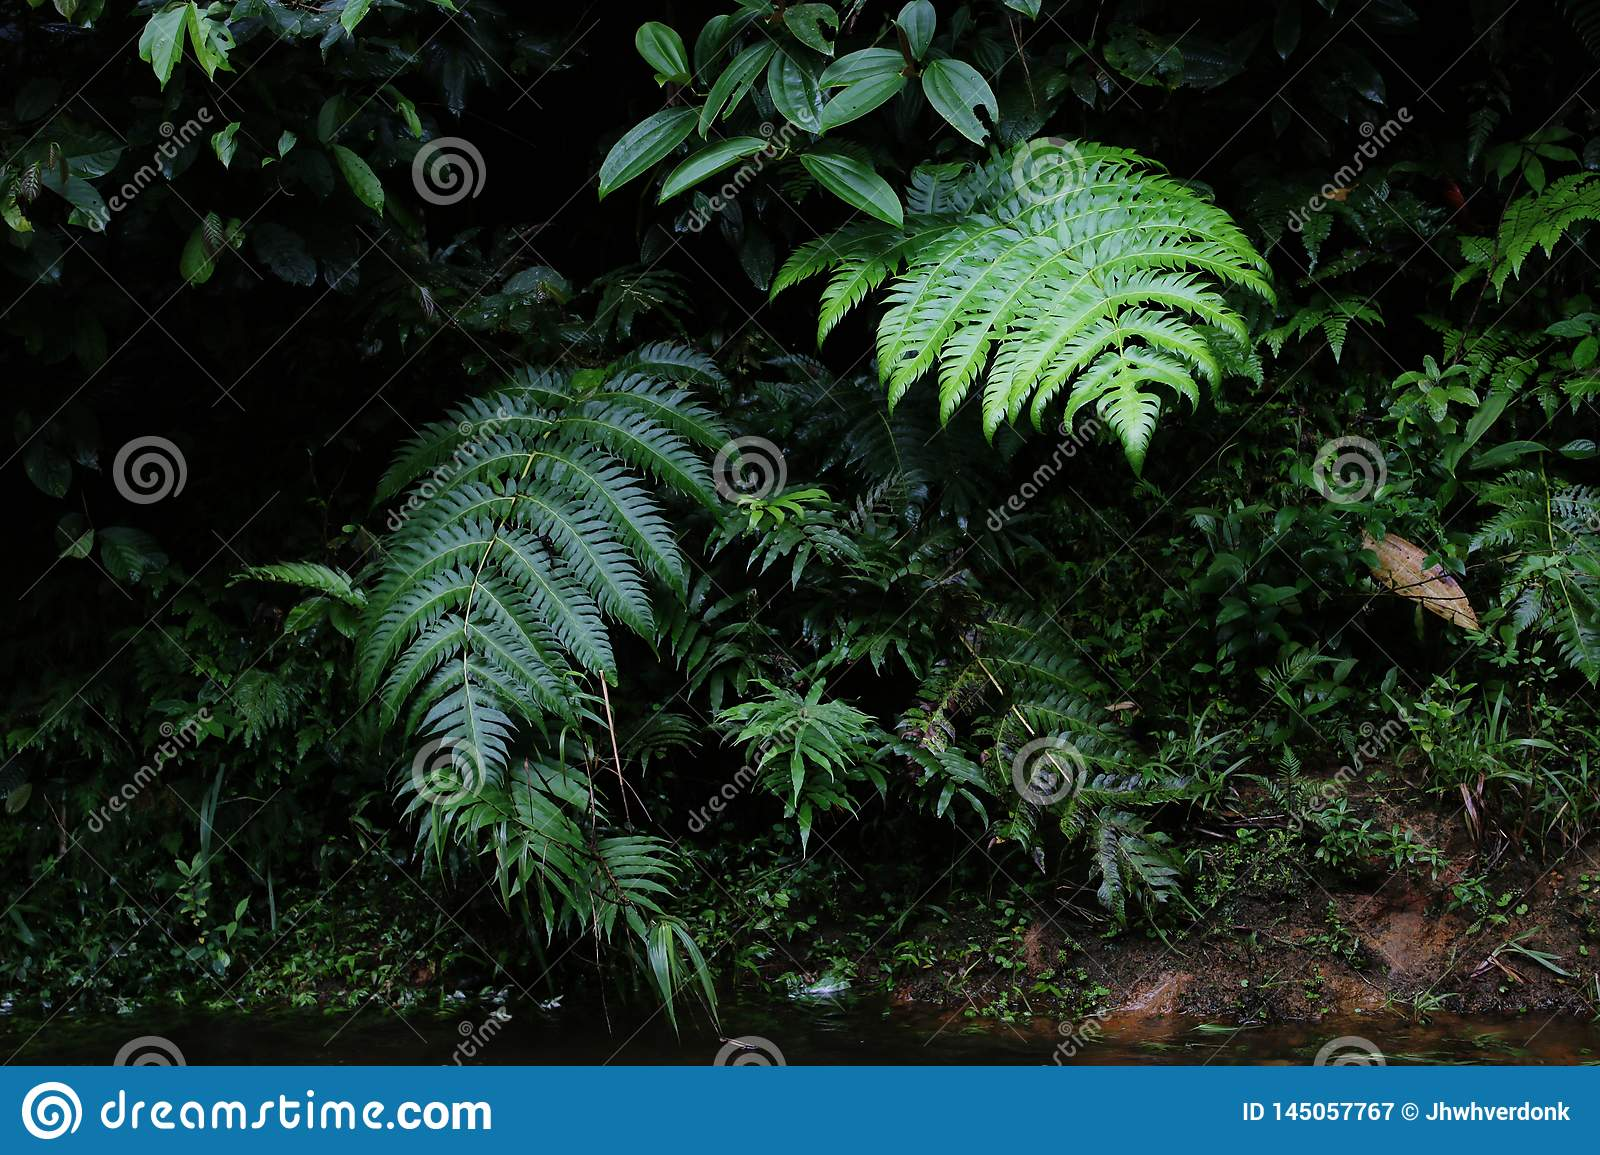 A Wallpaper Or Background Of Lush Jungle Or Tropical Forest